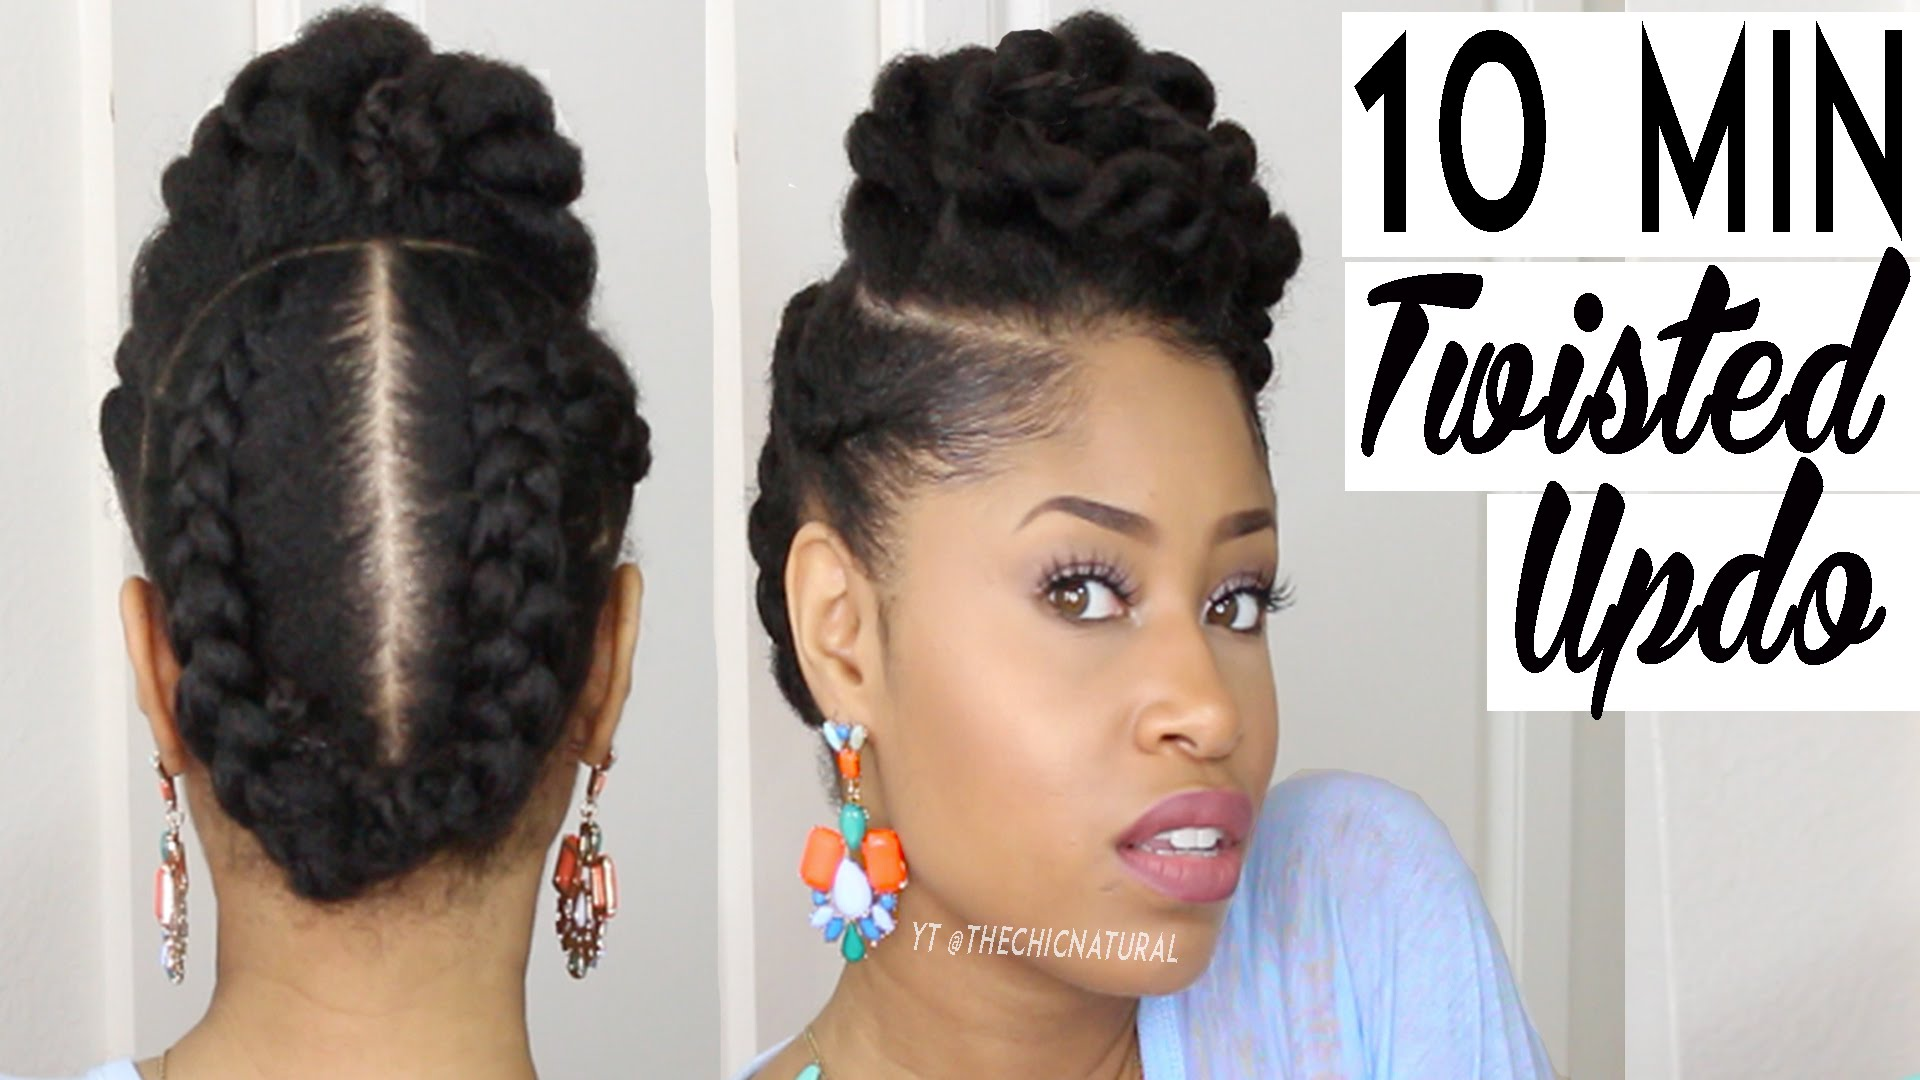 Quick Natural Hair Styles: Twisted Natural Hair Protective Updo In 10 Minutes Or Less